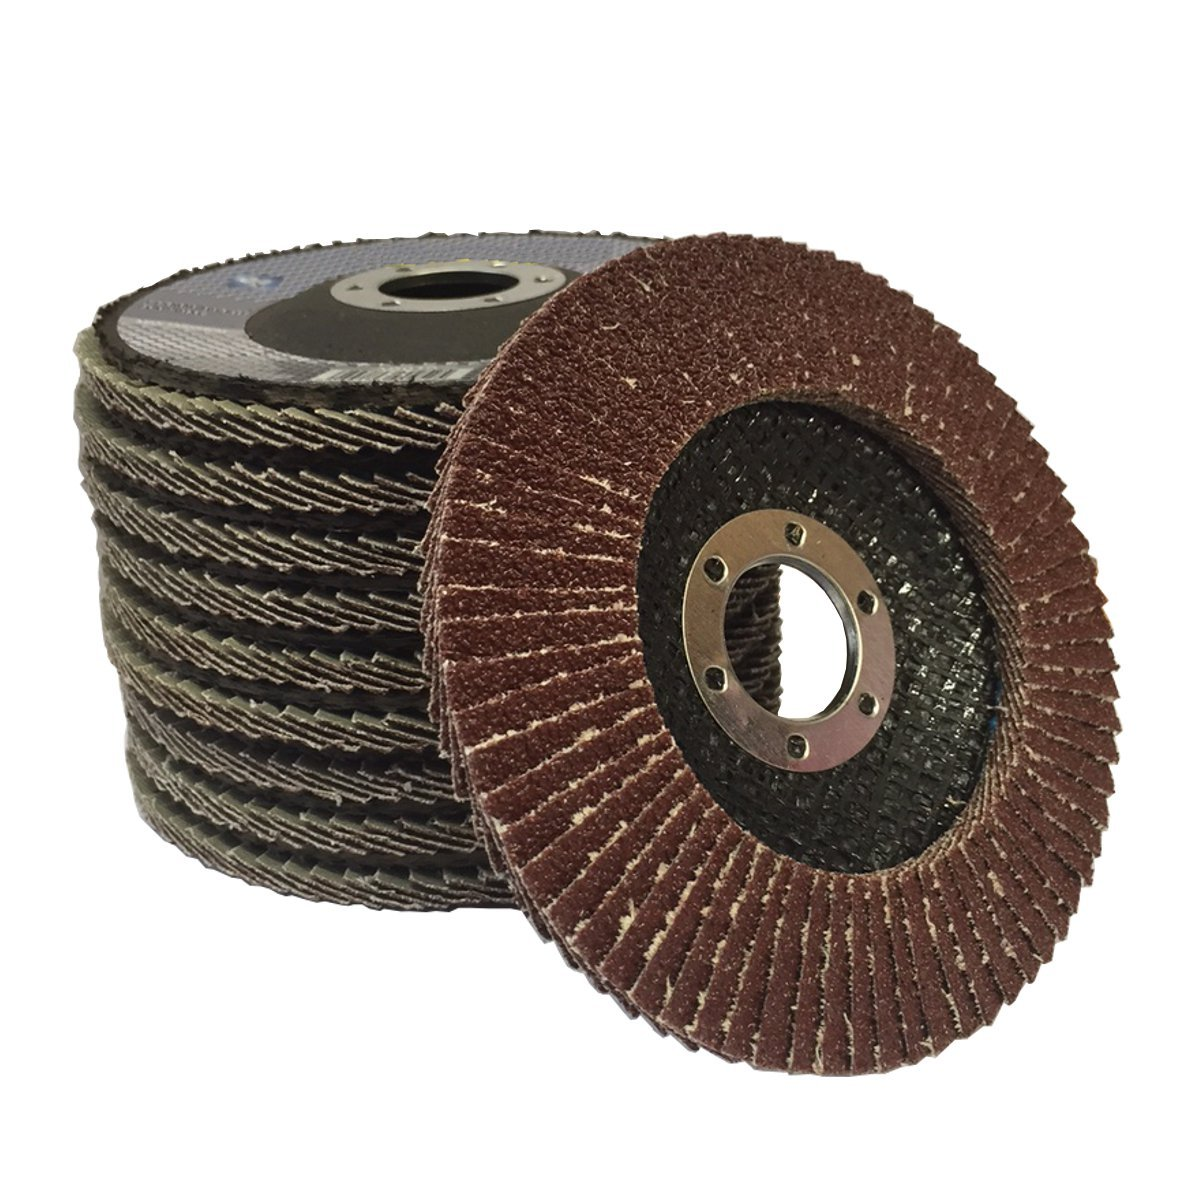 (PACK OF 5) Aluminium Oxide 40G (Coarse) Flap Discs for angle 115mm (4.5') Angle grinders TZ